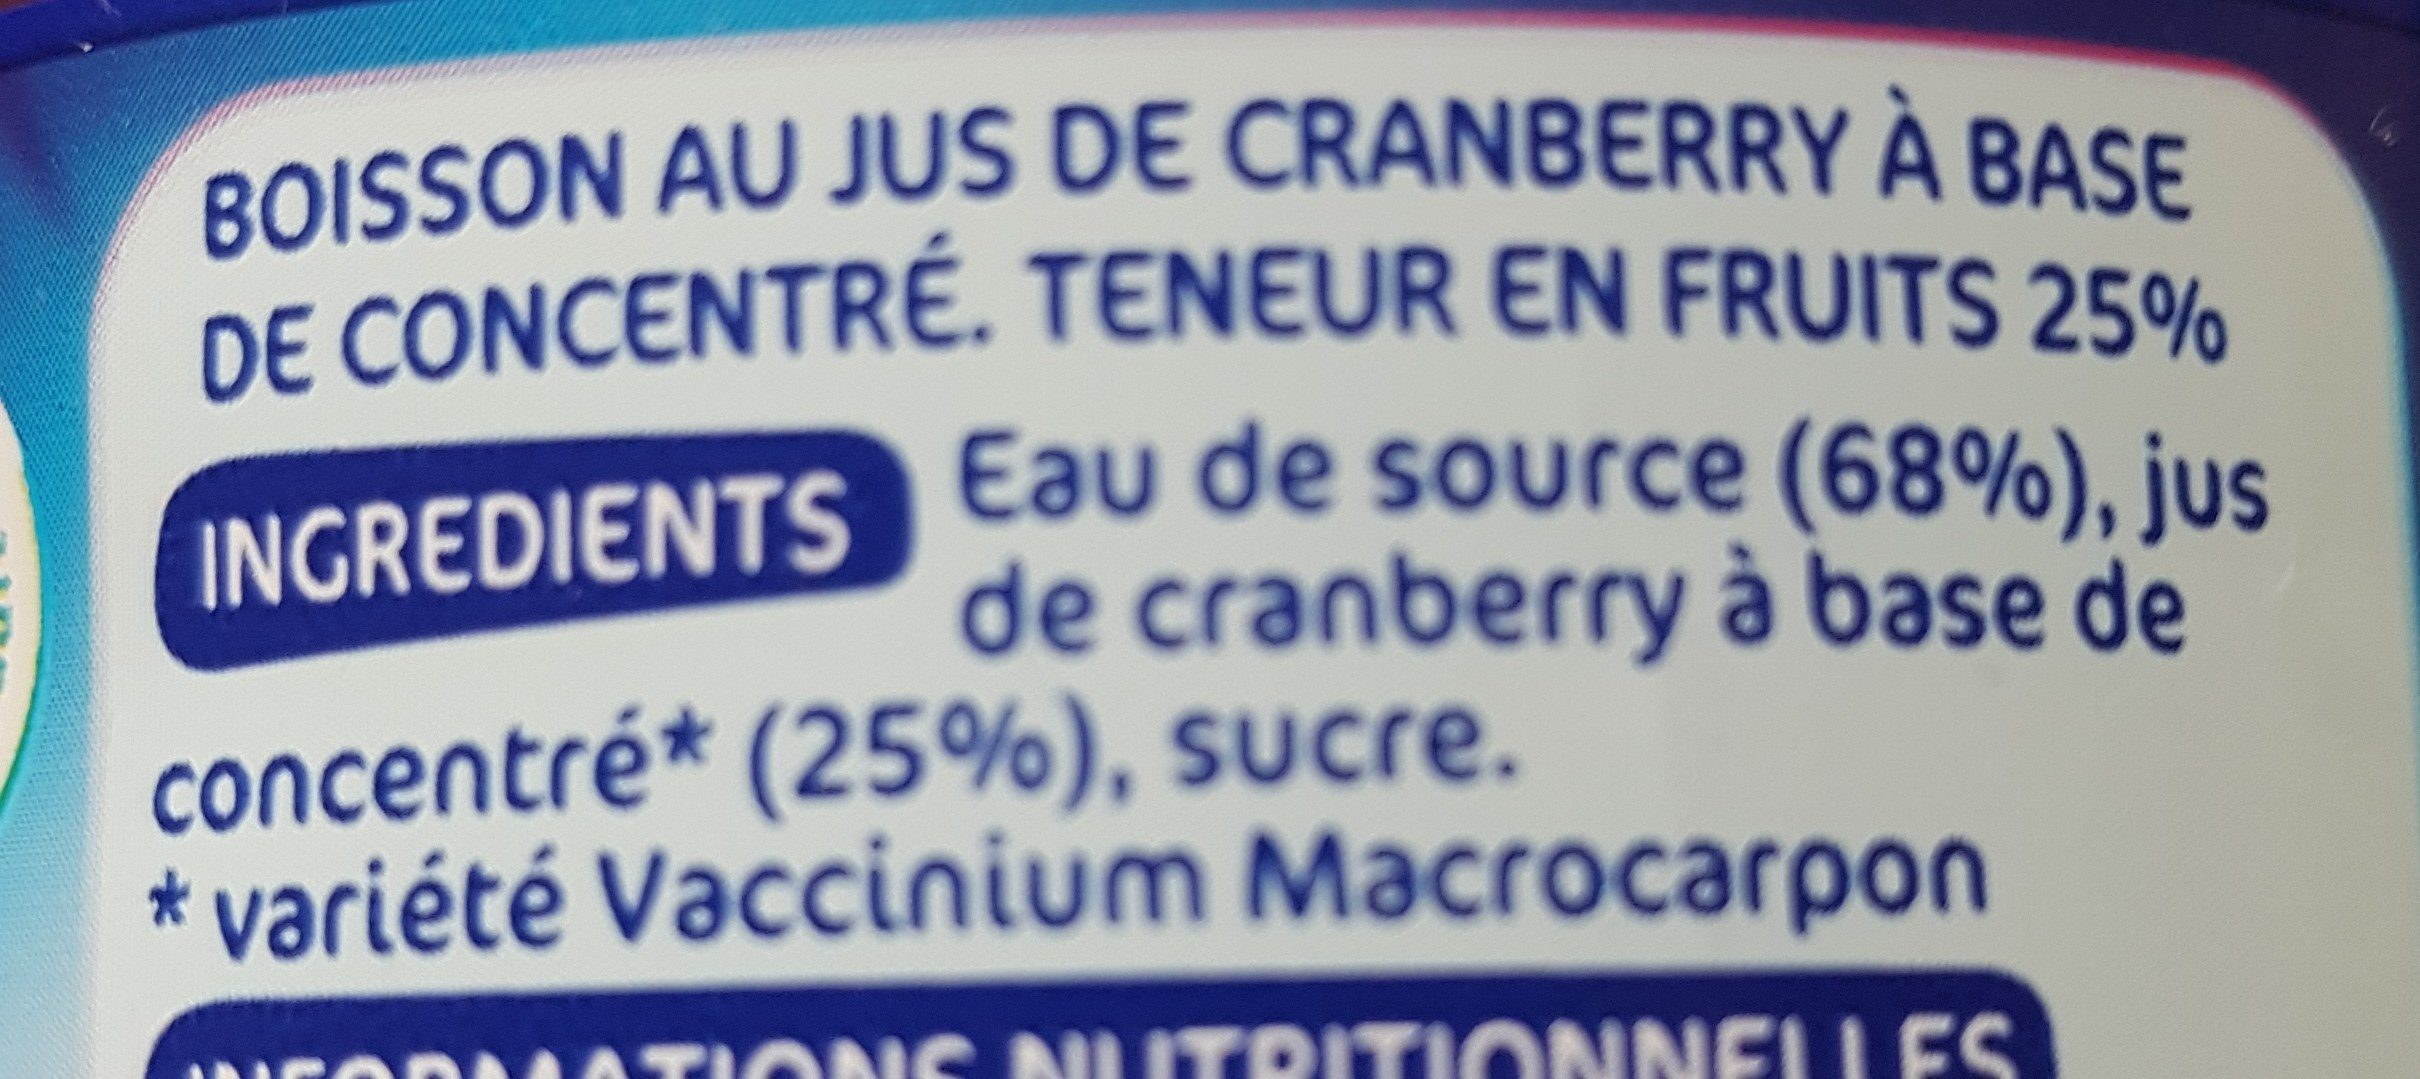 Boisson cranberry - Ingredients